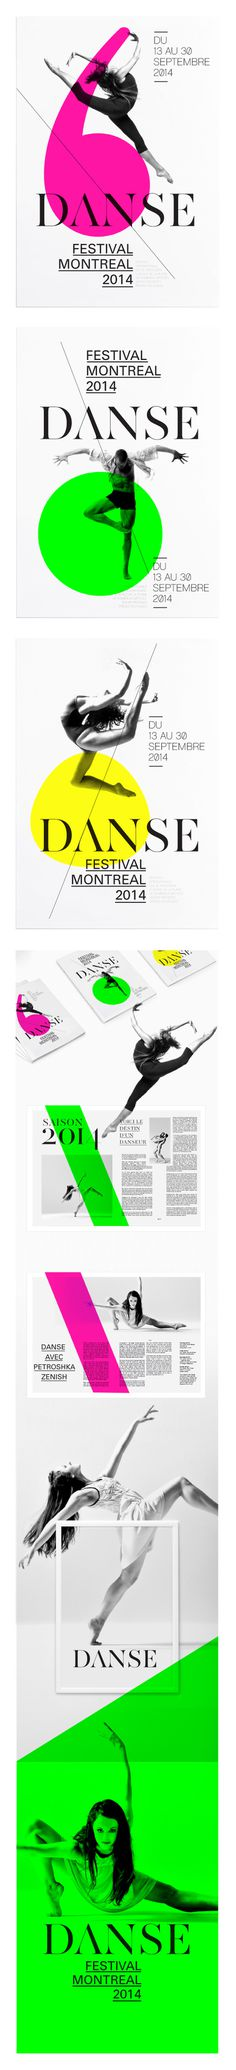 FESTIVAL DE DANSE DE MONTREAL on Behance #dance